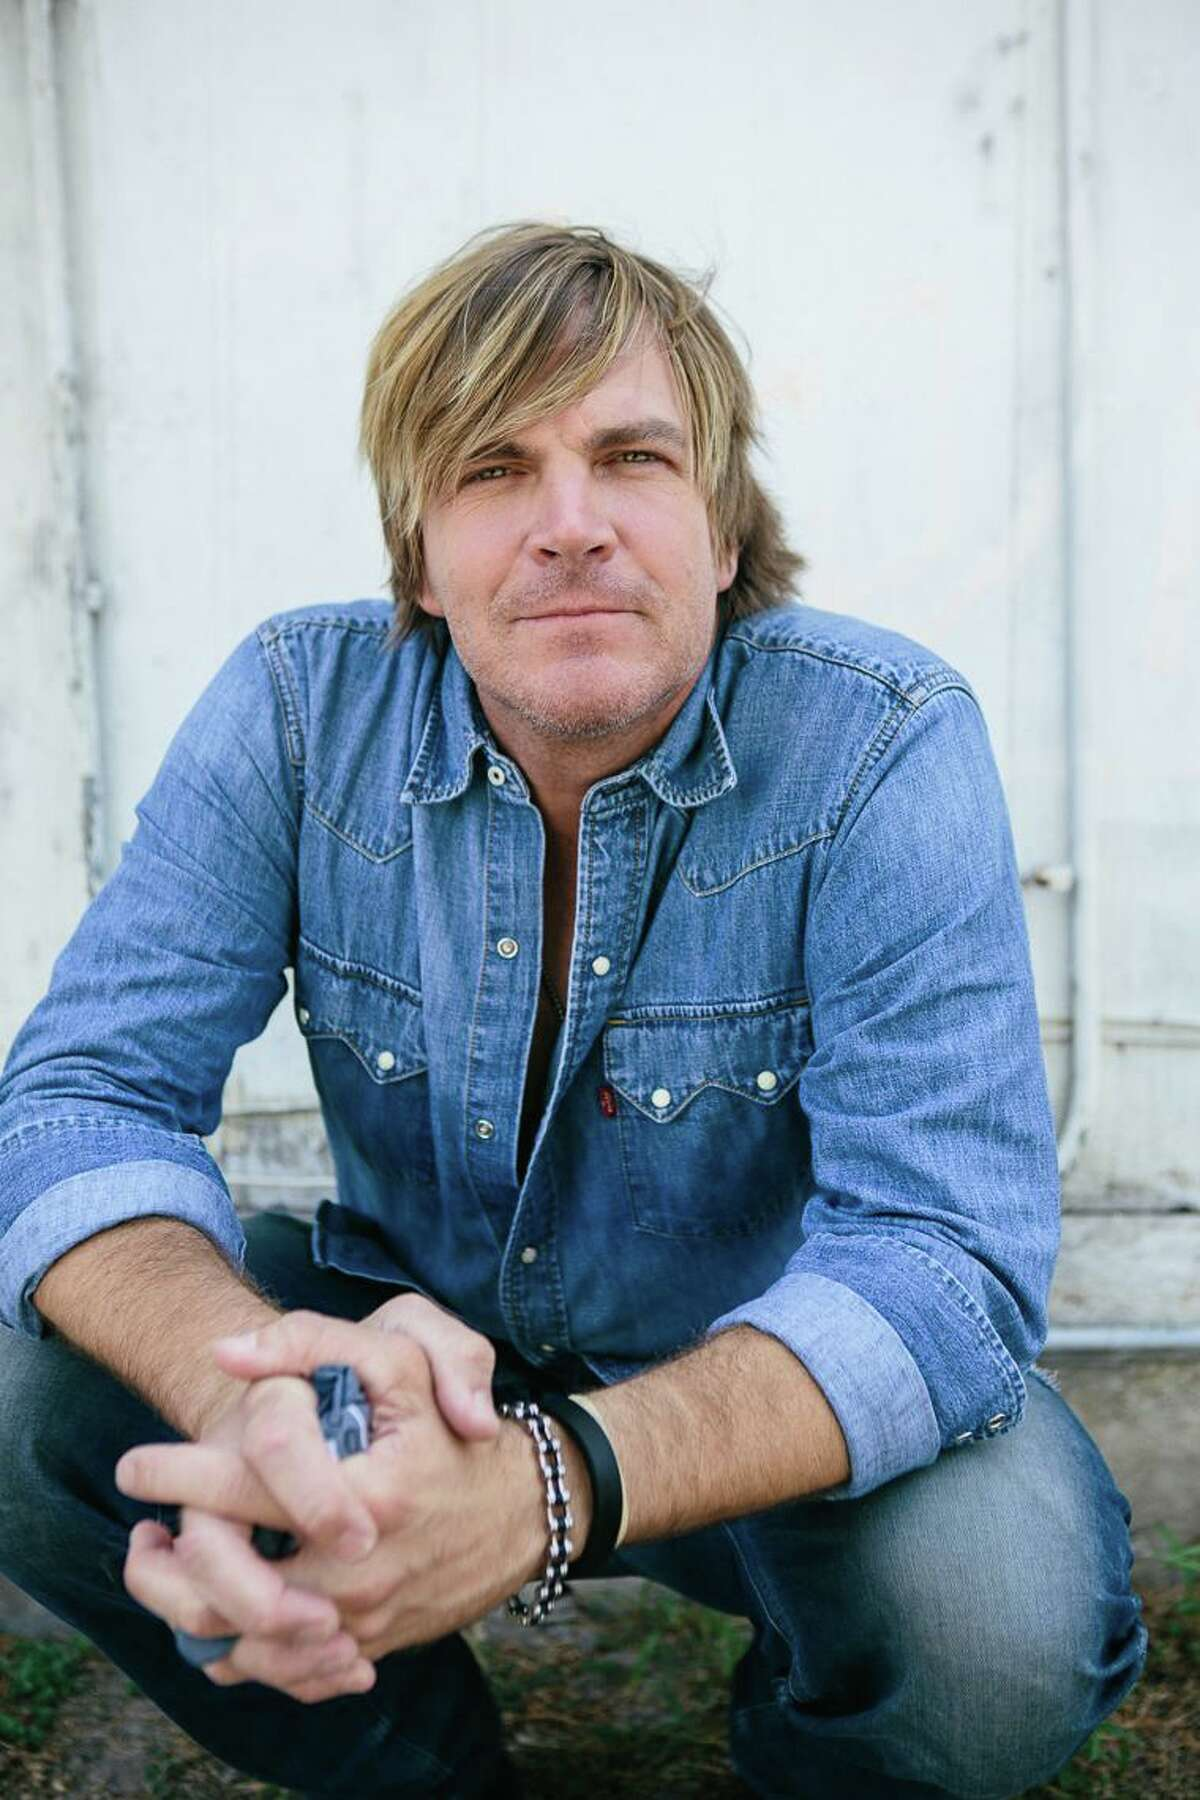 Billboard Country Top 40 artist Jack Ingram performs July 23 during Lagoonfest. Learn more at www.lagoonfesttexas.com.